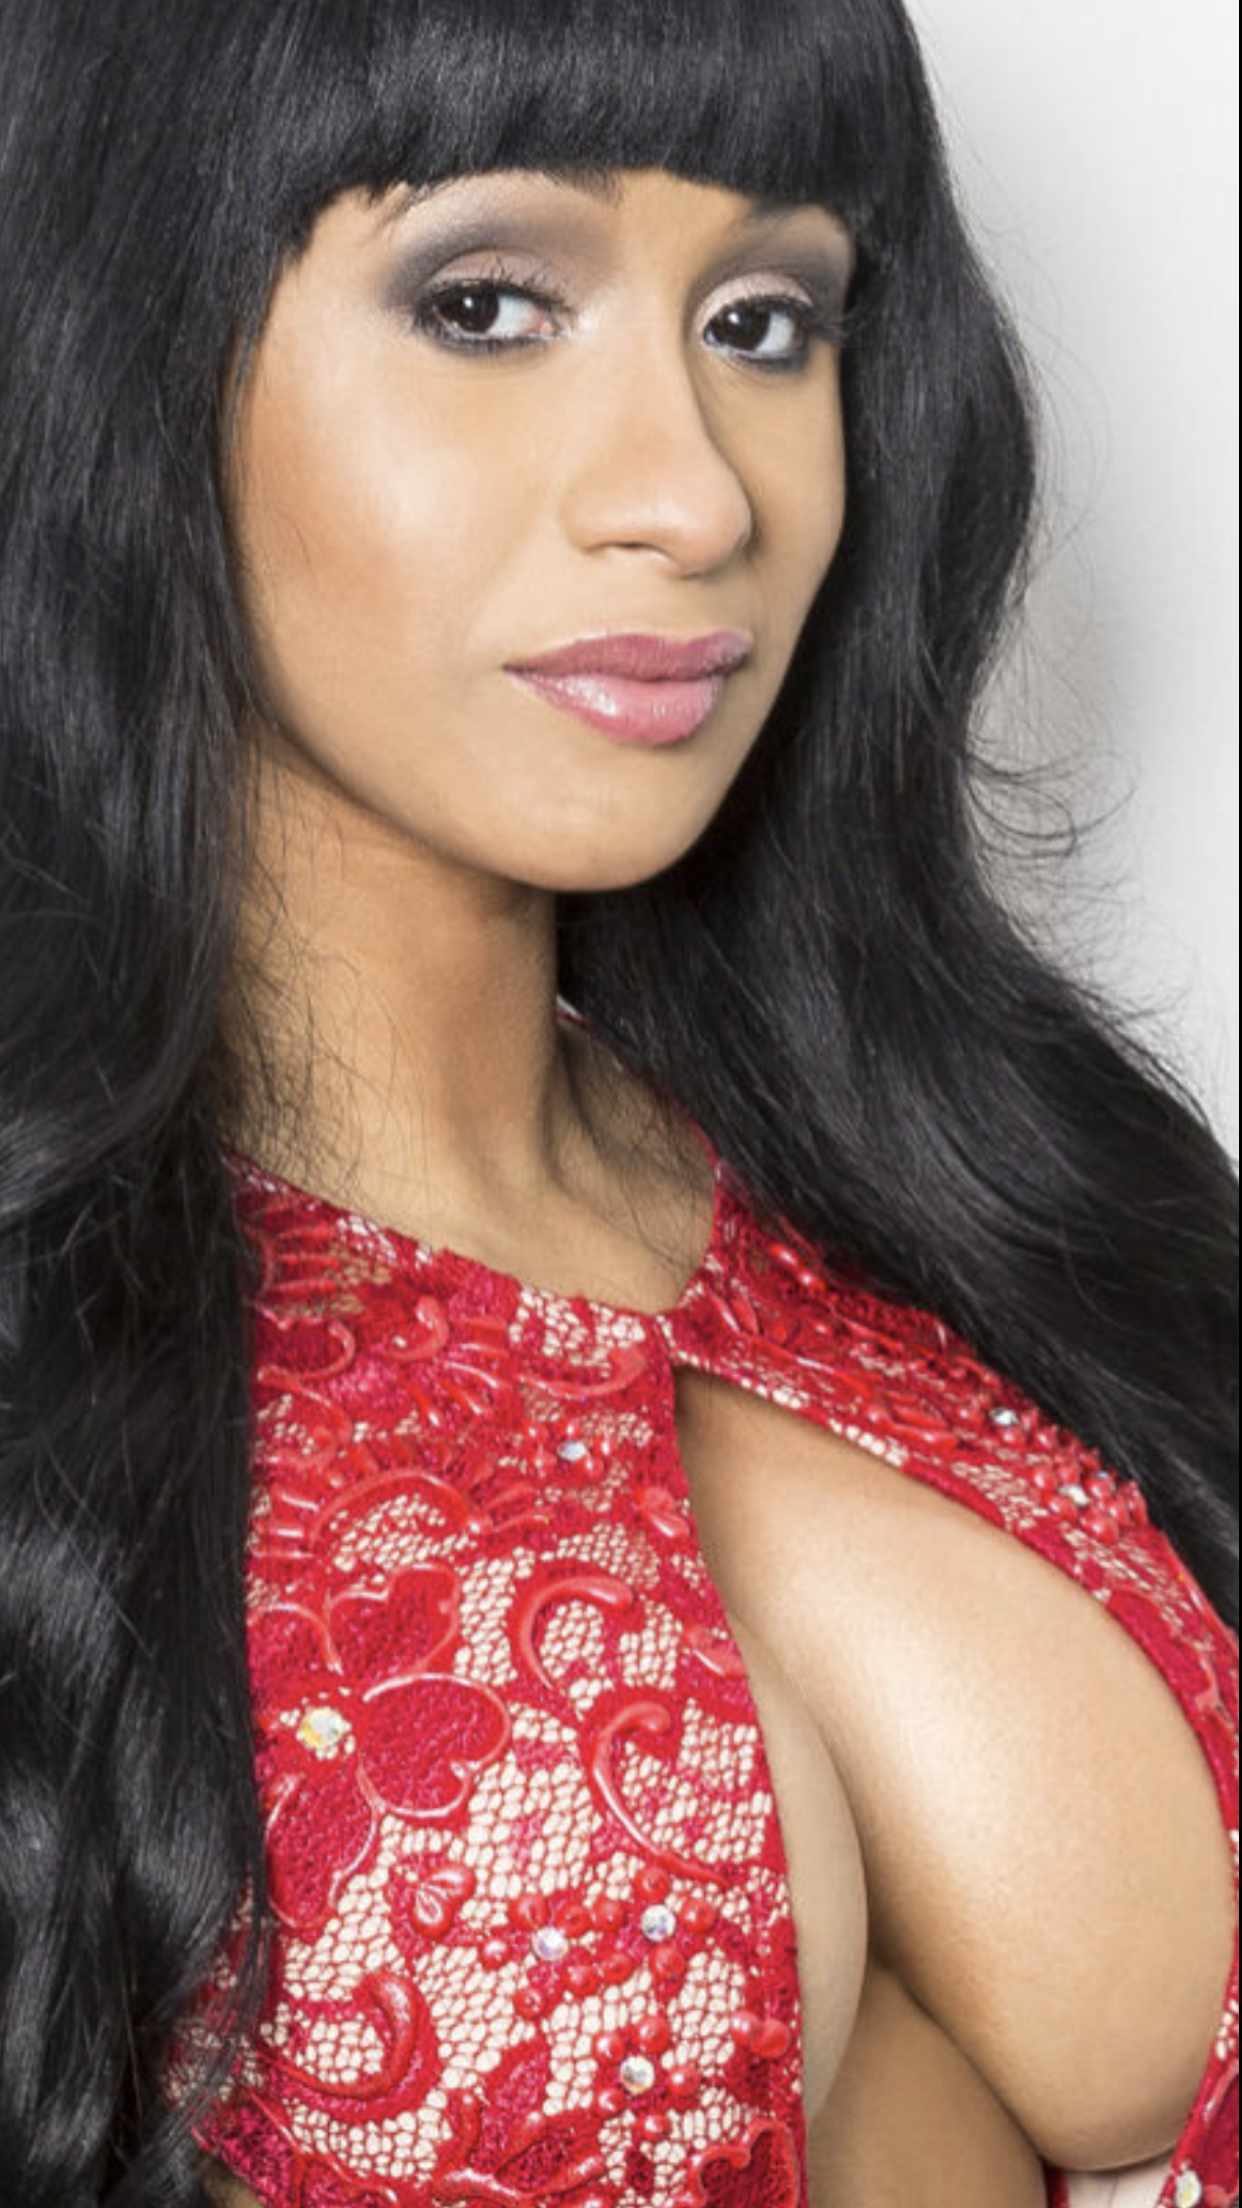 Boobs Cardi B naked (67 photos), Sexy, Fappening, Instagram, see through 2019